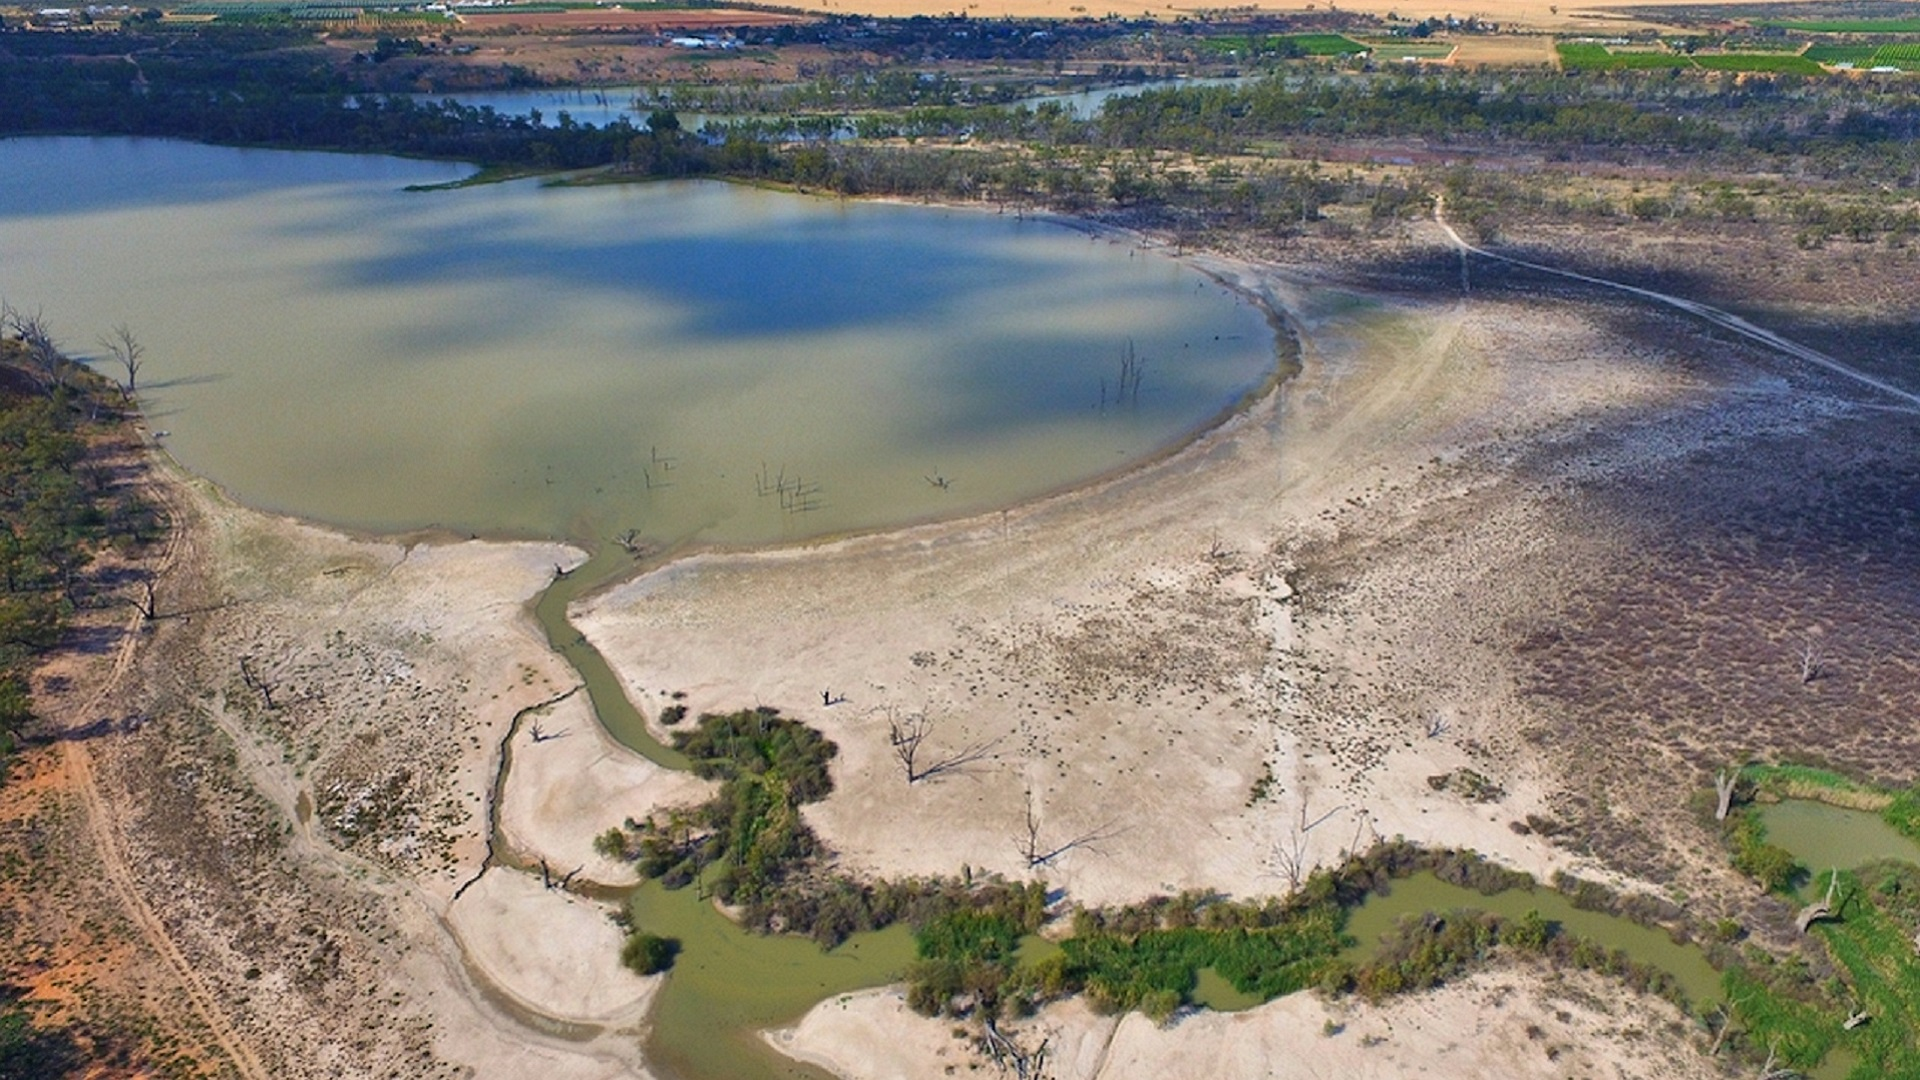 The environment loses as subsidies drive Murray-Darling Basin extractions